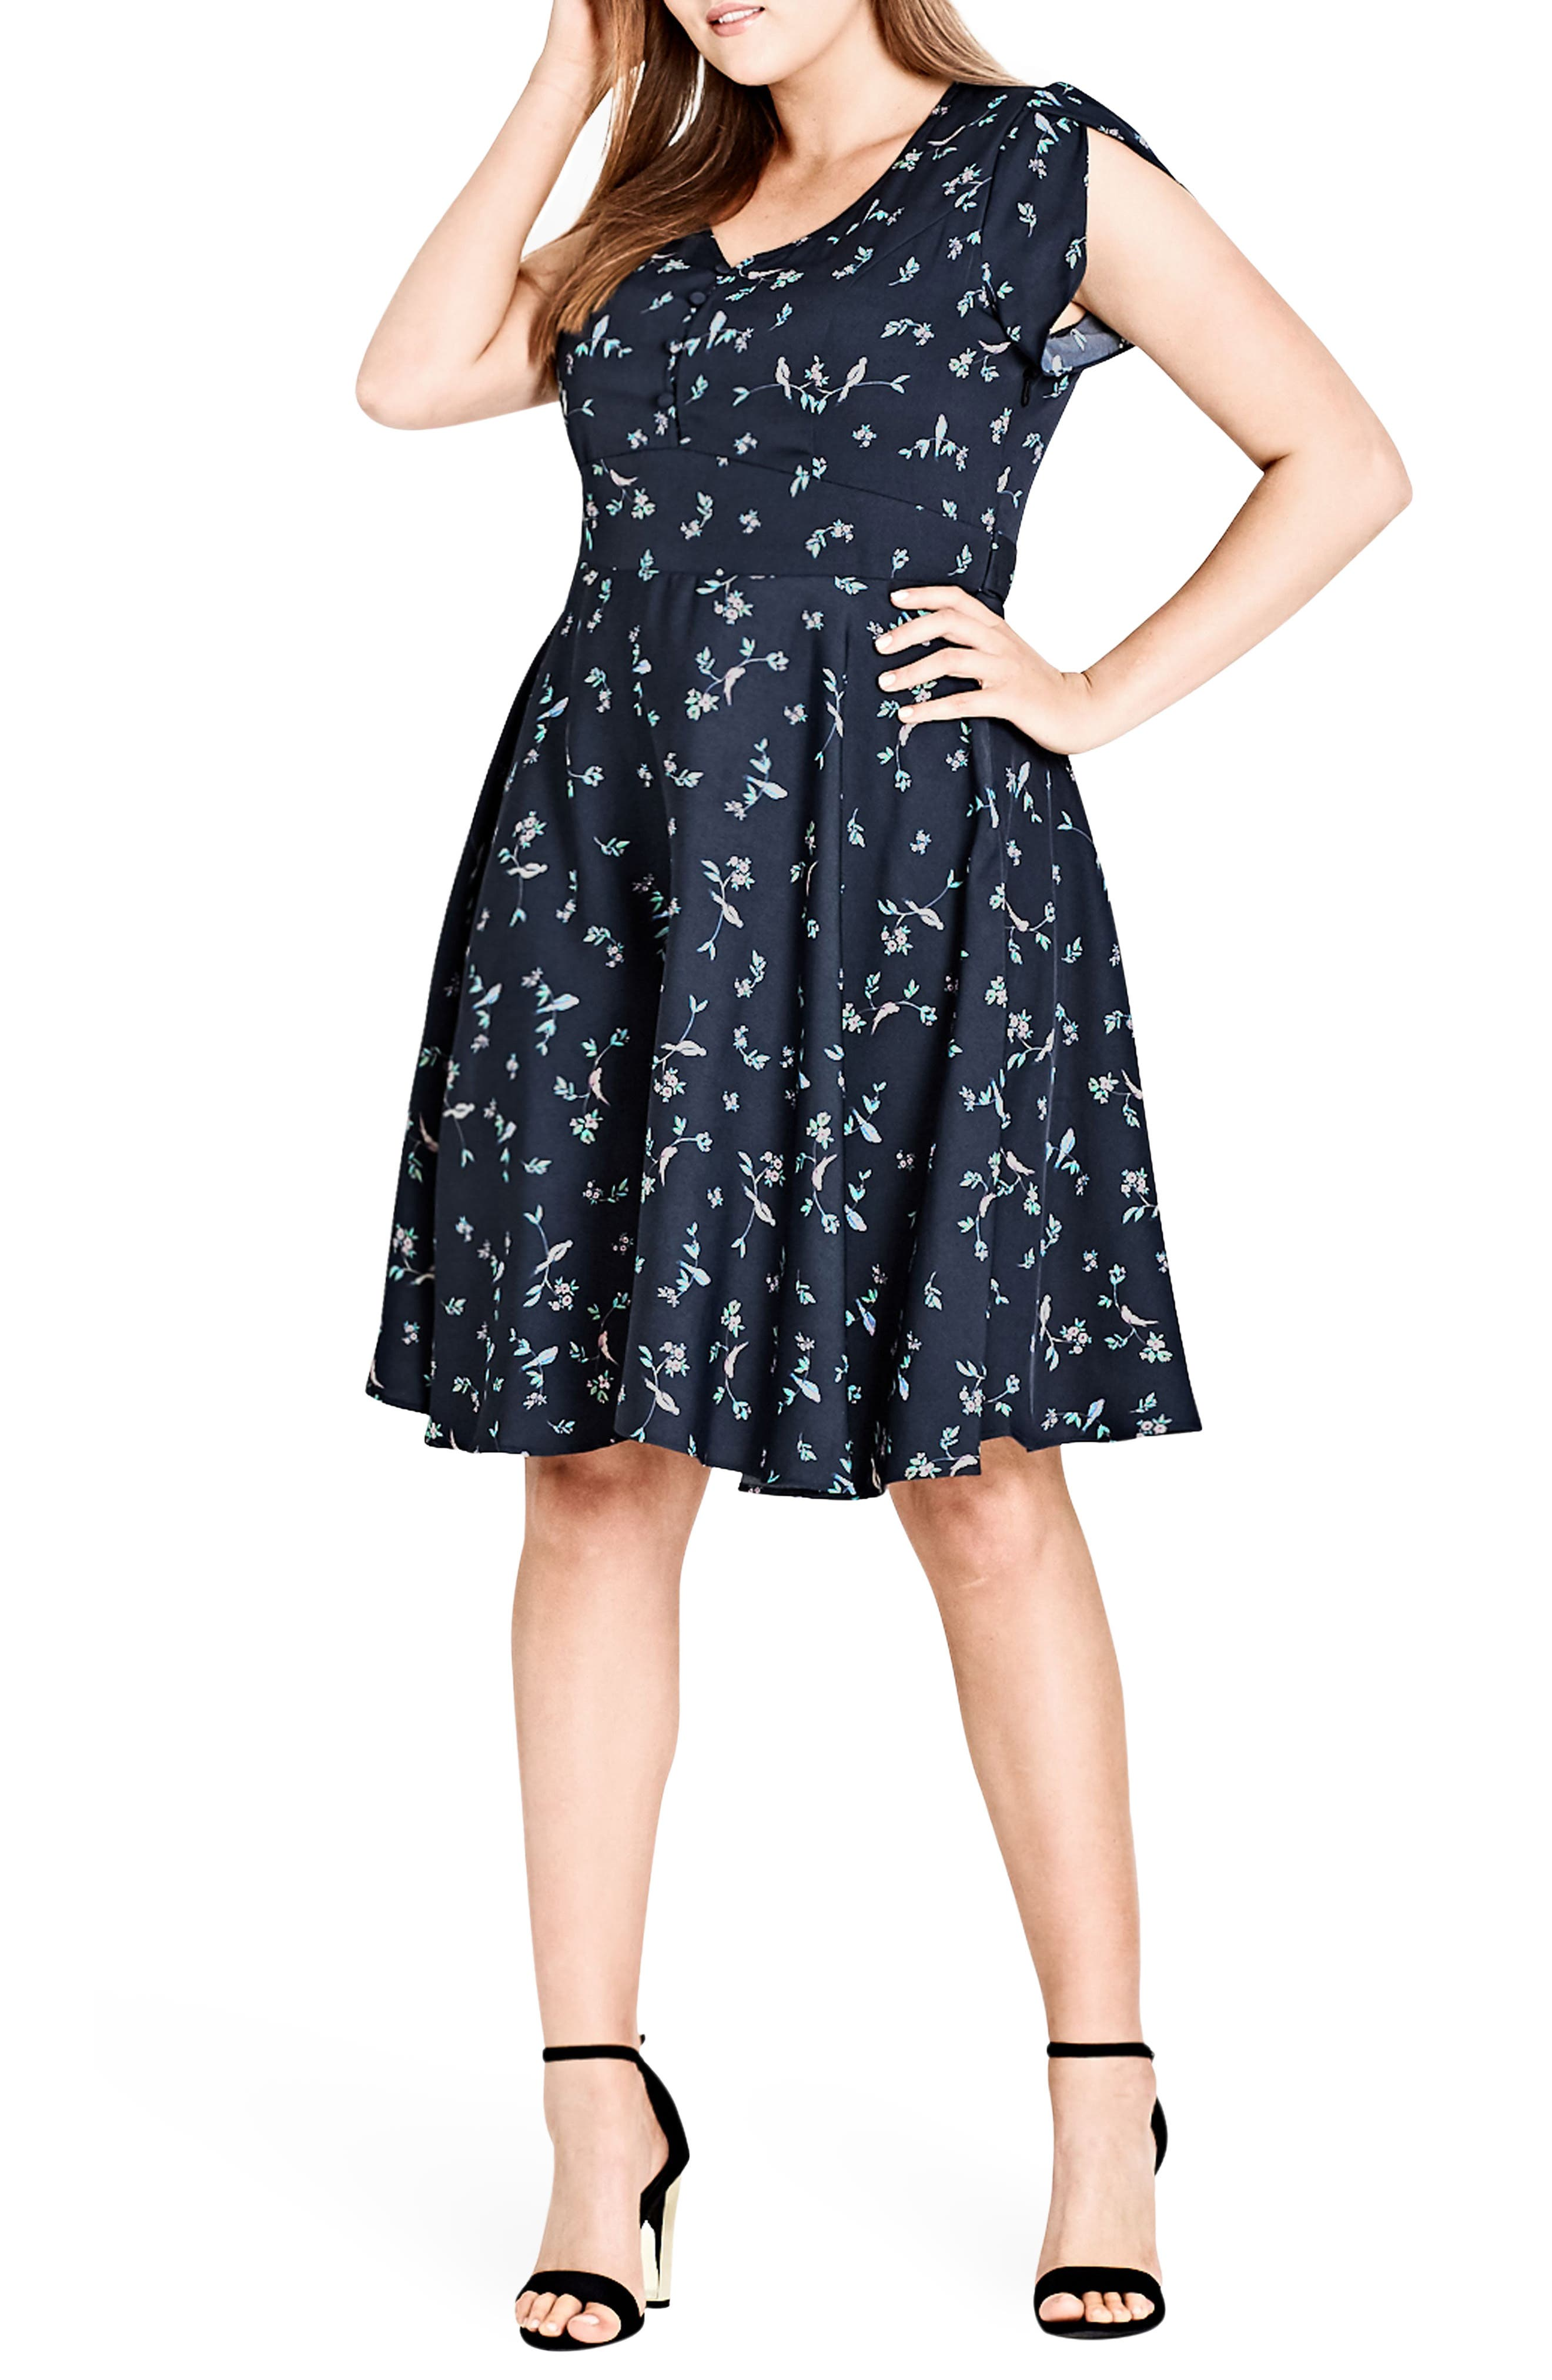 Alternate Image 1 Selected - City Chic Sweet Tweet Fit & Flare Dress (Plus Size)